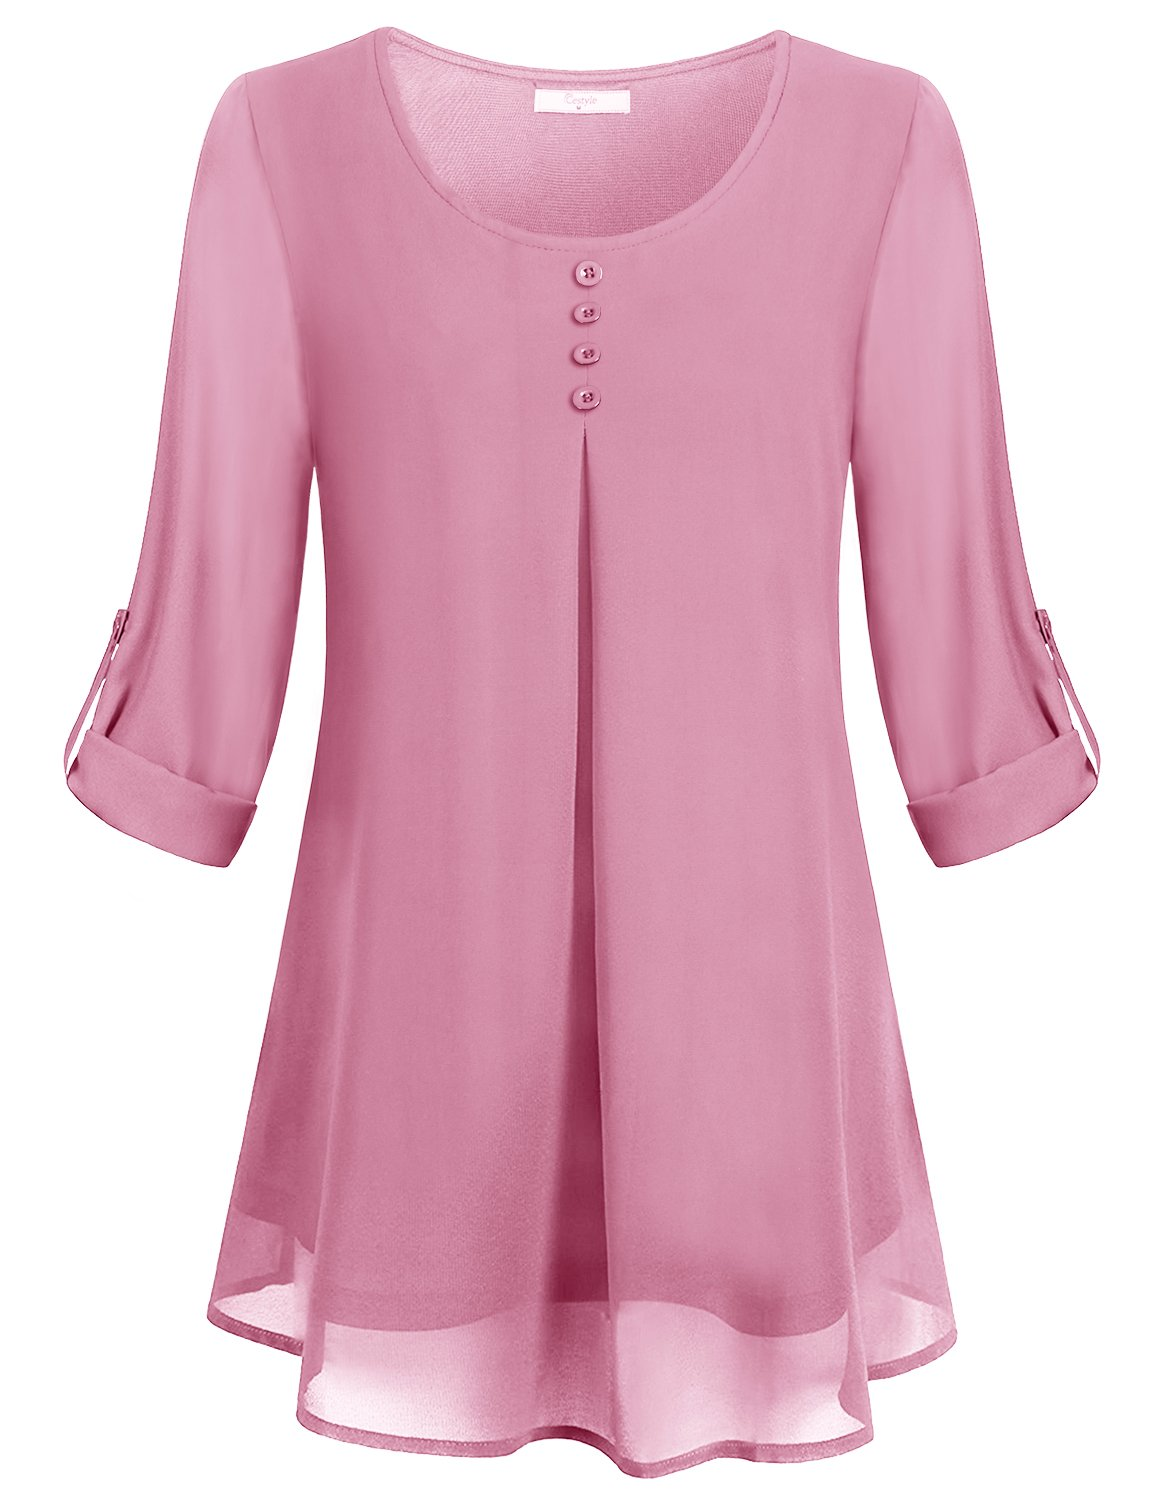 Cestyle Loose Fitting Tops for Women,Juniors U Neck 3/4 Sleeve Pure Color Long Shirts Summer Double Layer Dressy Chiffon Tunic Blouse Tee Pink Size M